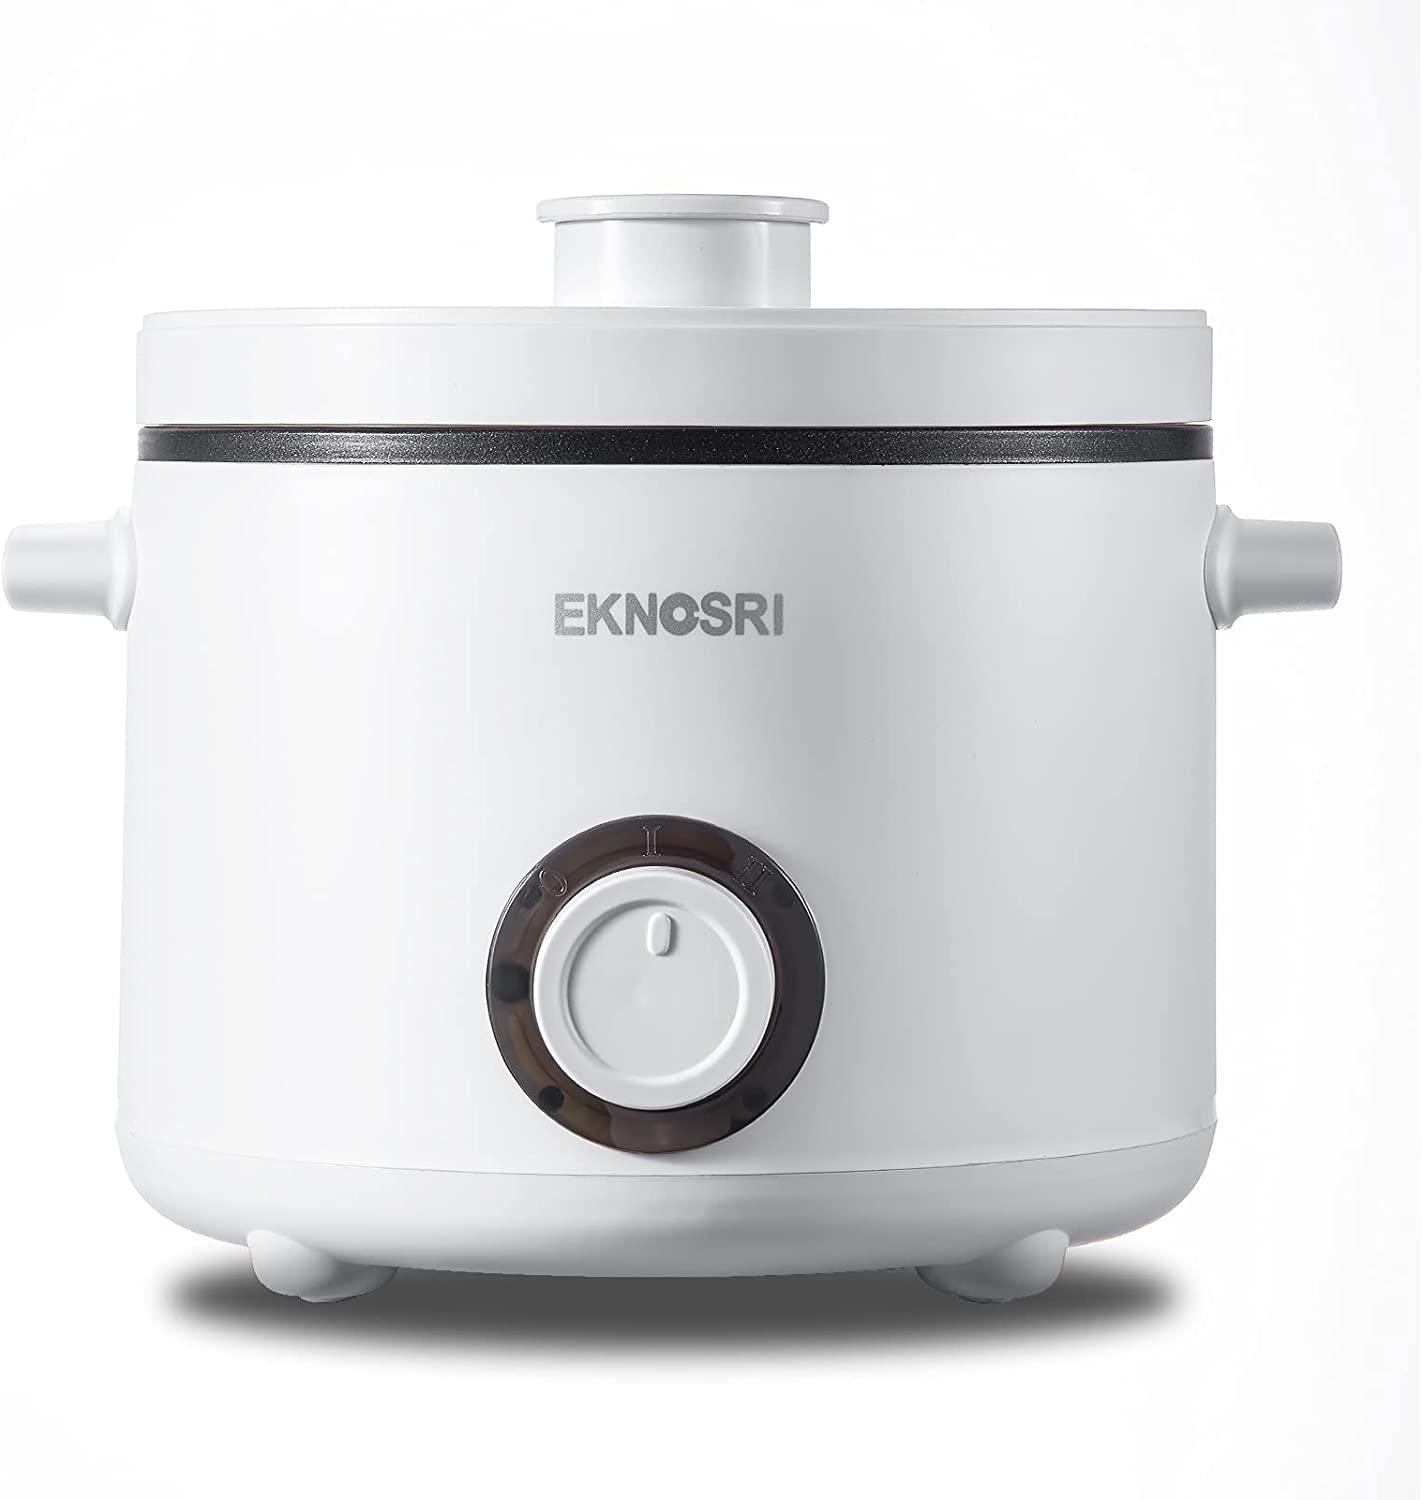 EKNOSRI Electric Hot Pot, Rapid Noodles Cooker Multi-purpose Non-stick Mini Pot with Temperature Control, 1.5L Multifunctional Fast Cooking Pot for Egg, Meat, Vegetable, Oatmeal and Soup - White